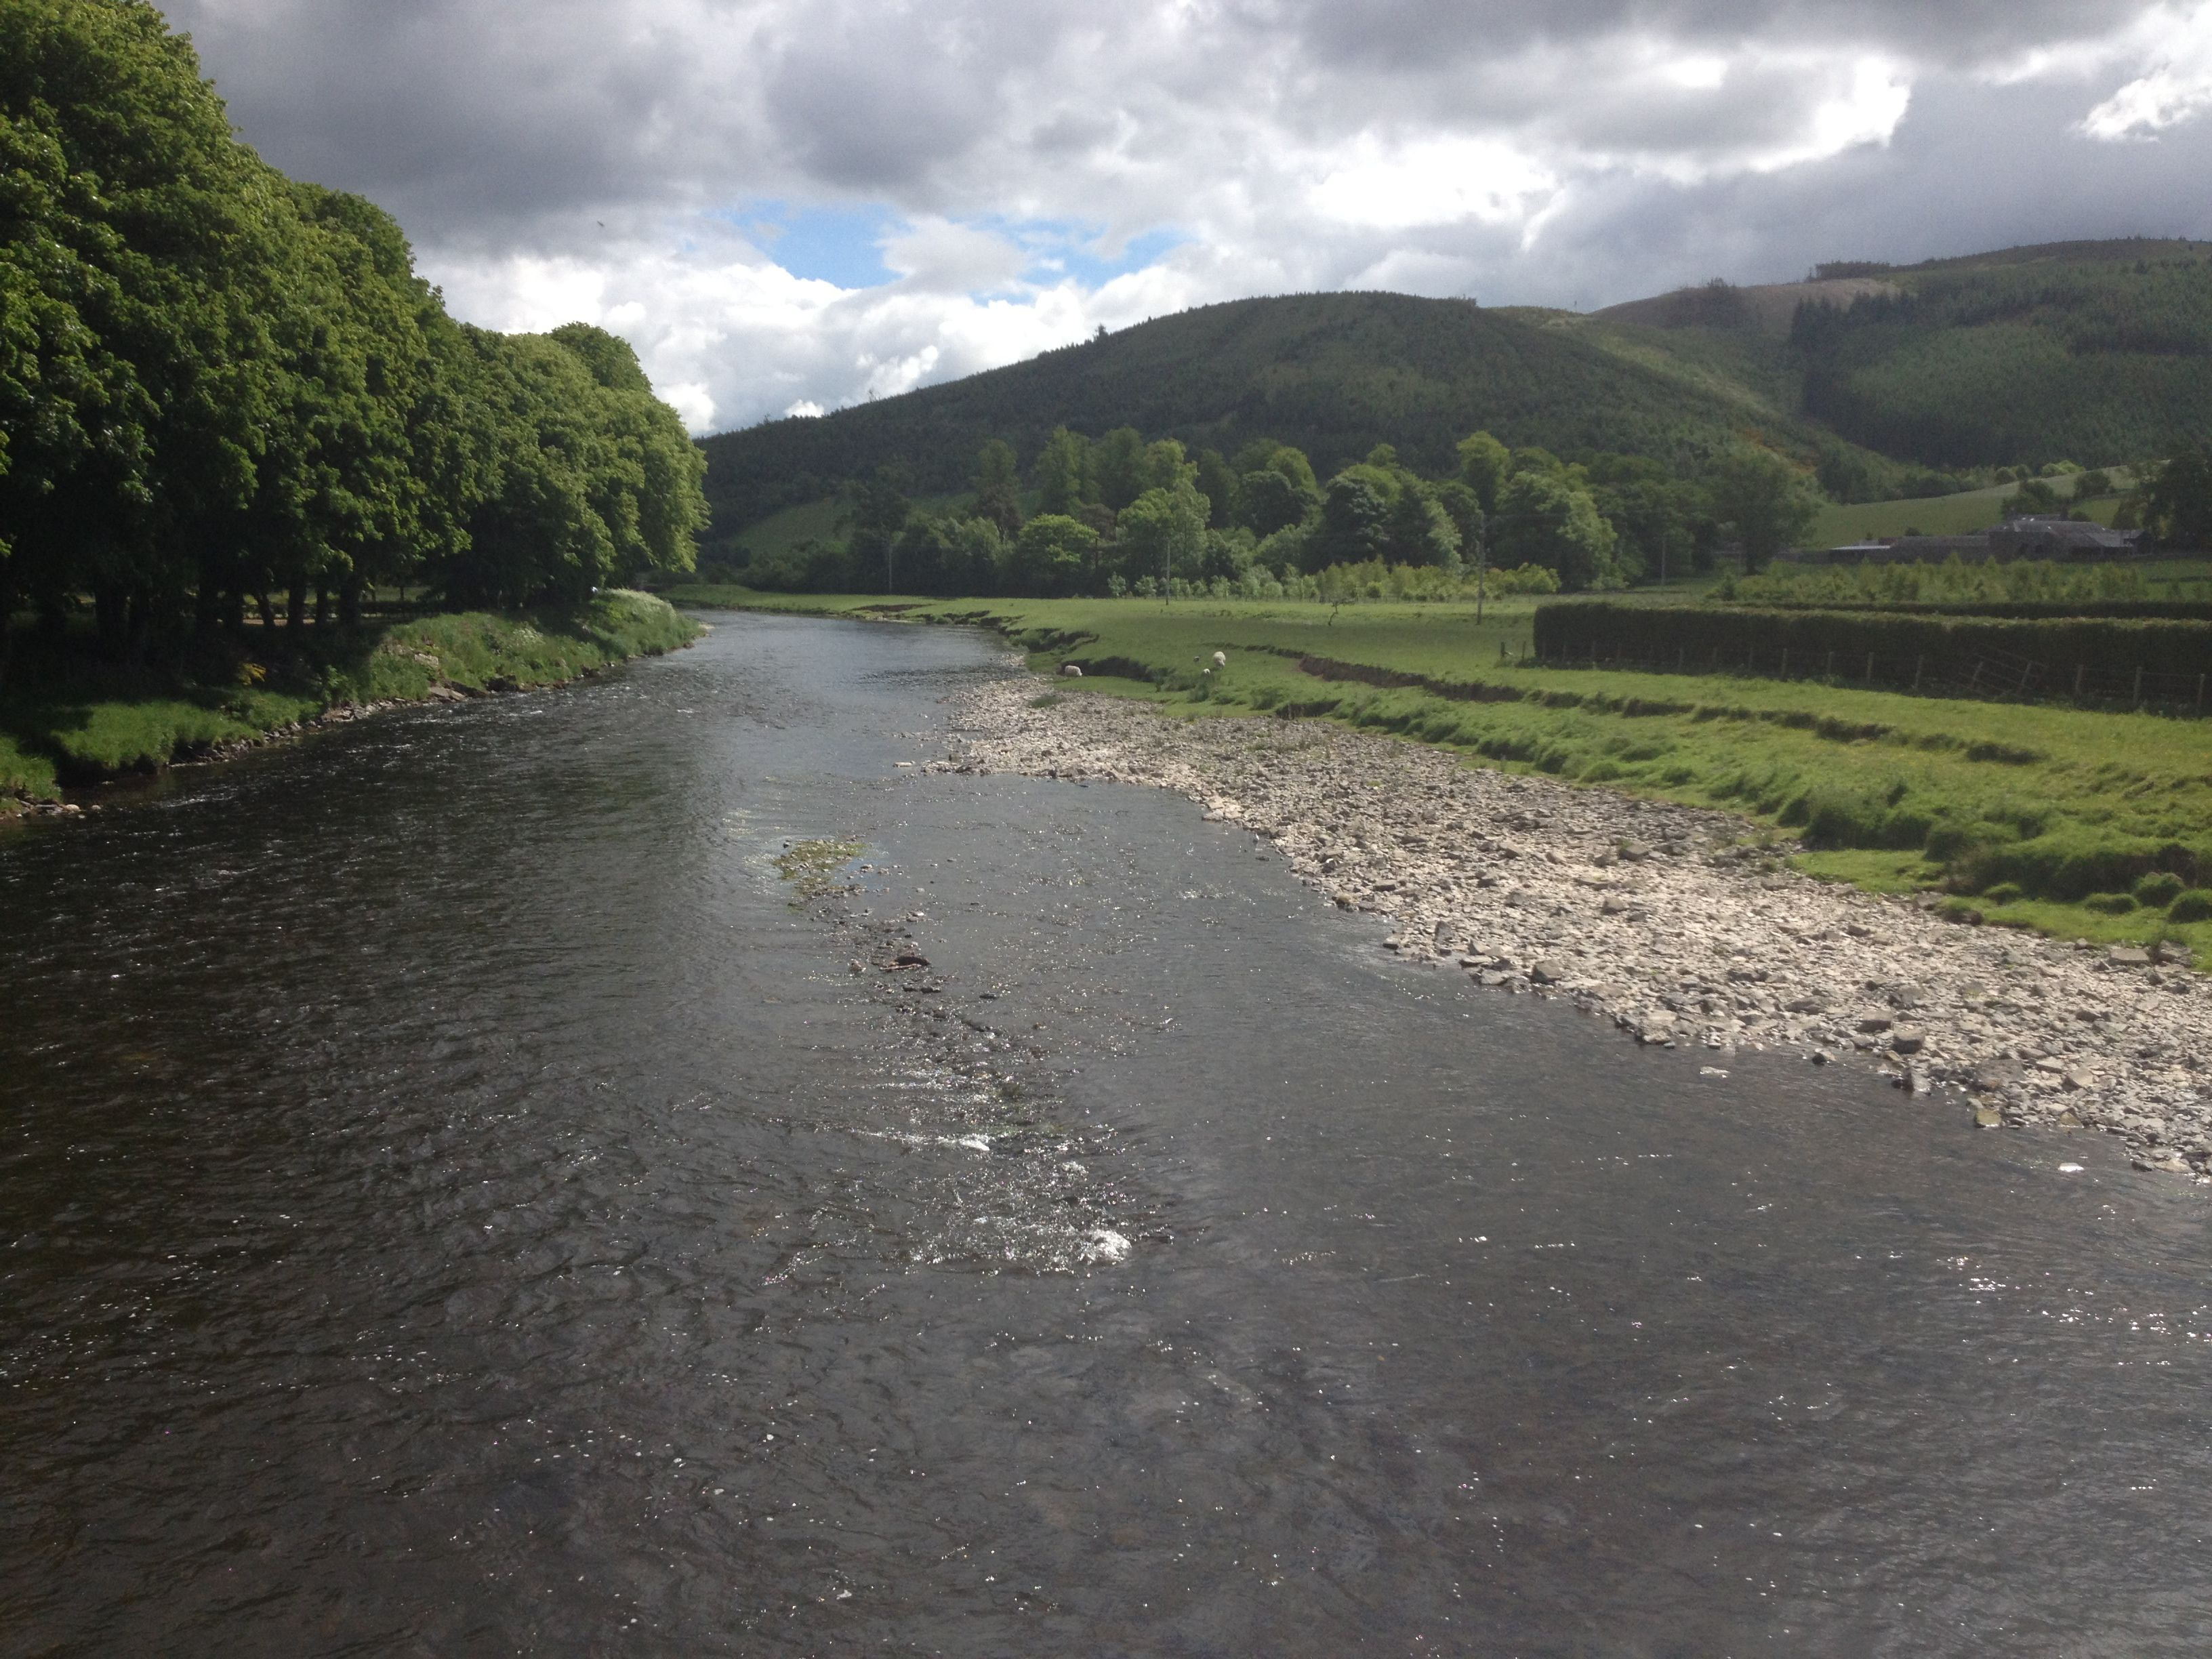 The River Tweed that runs past many mill towns in the Scottish Border country. (Author's photo)